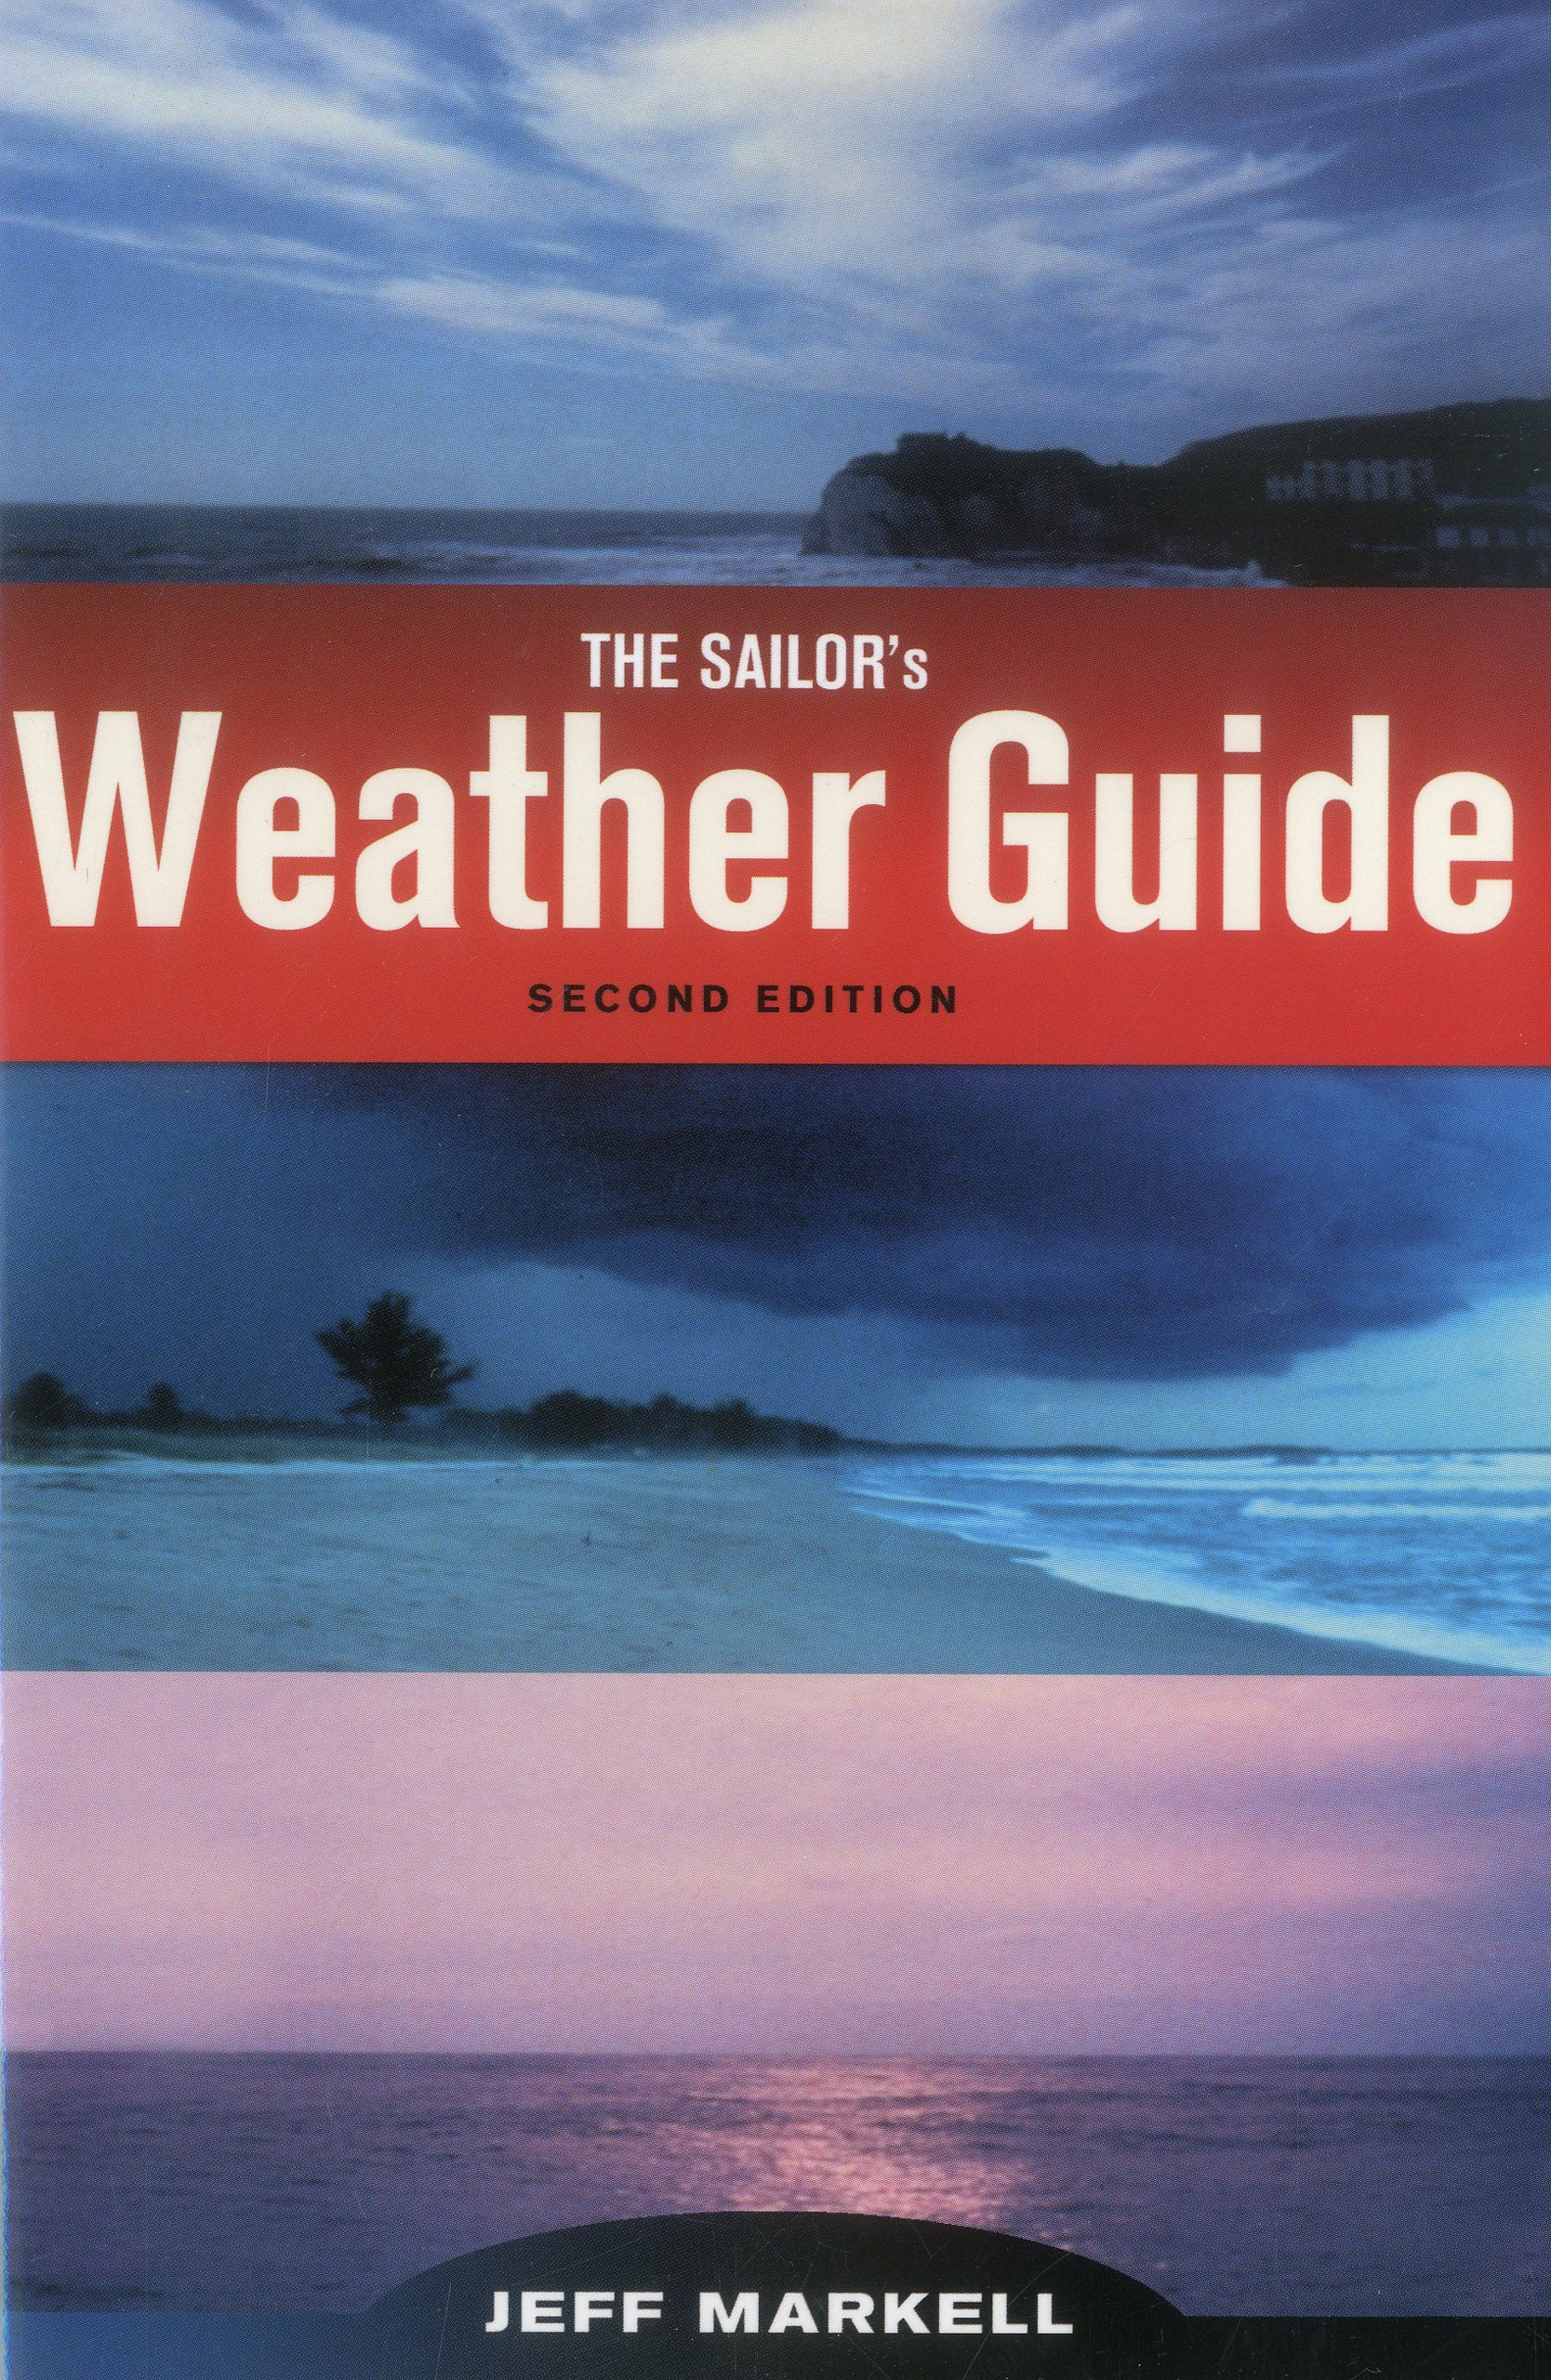 Sailors weather guide jeff markell 9781574091588 amazon books fandeluxe Choice Image